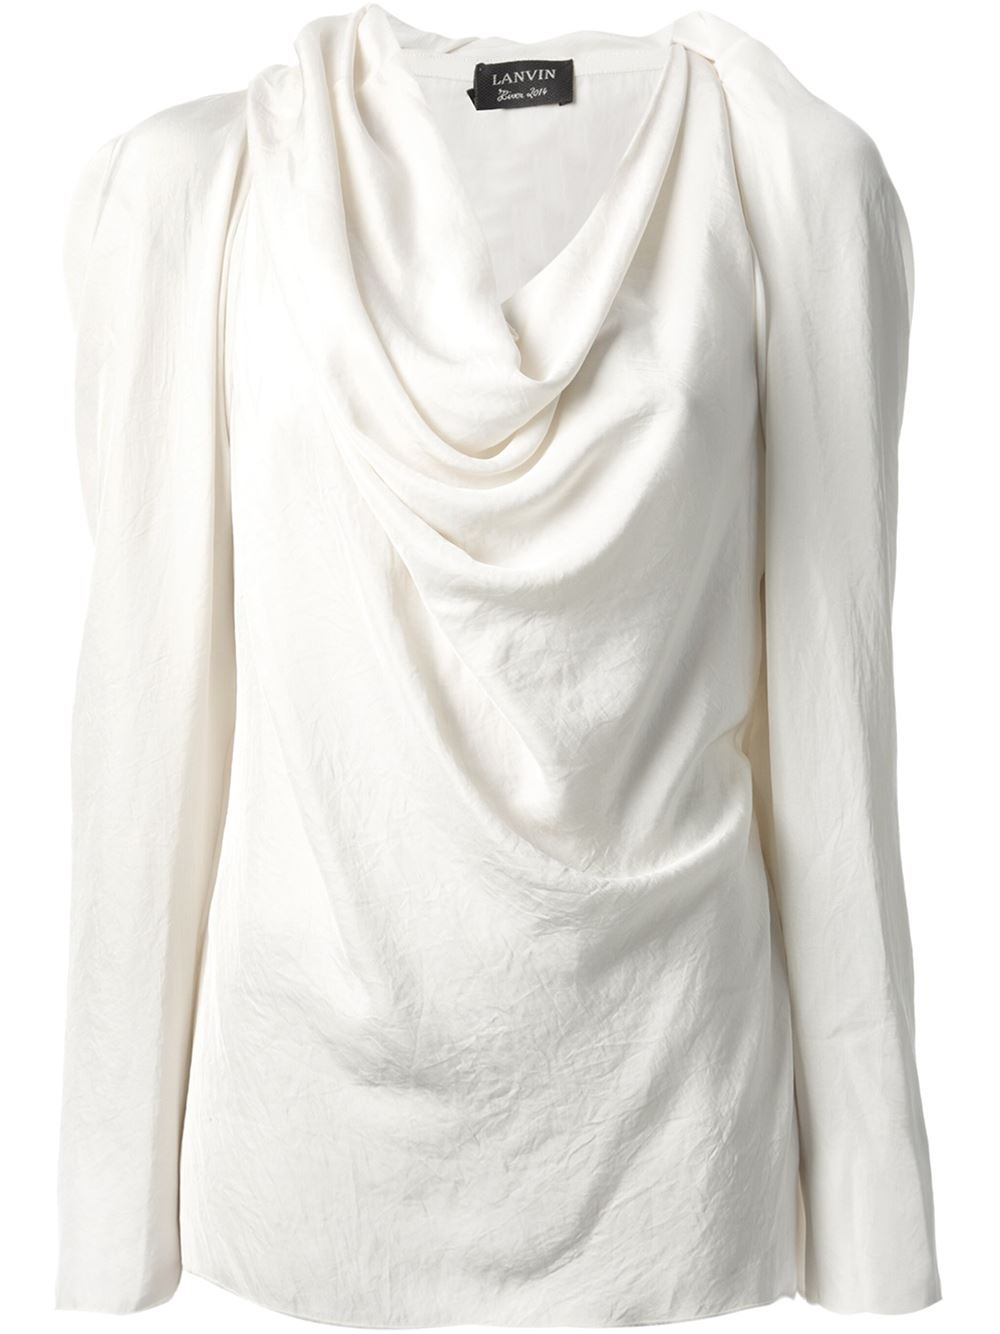 boutique chica draped mi drapes blouse limited dee